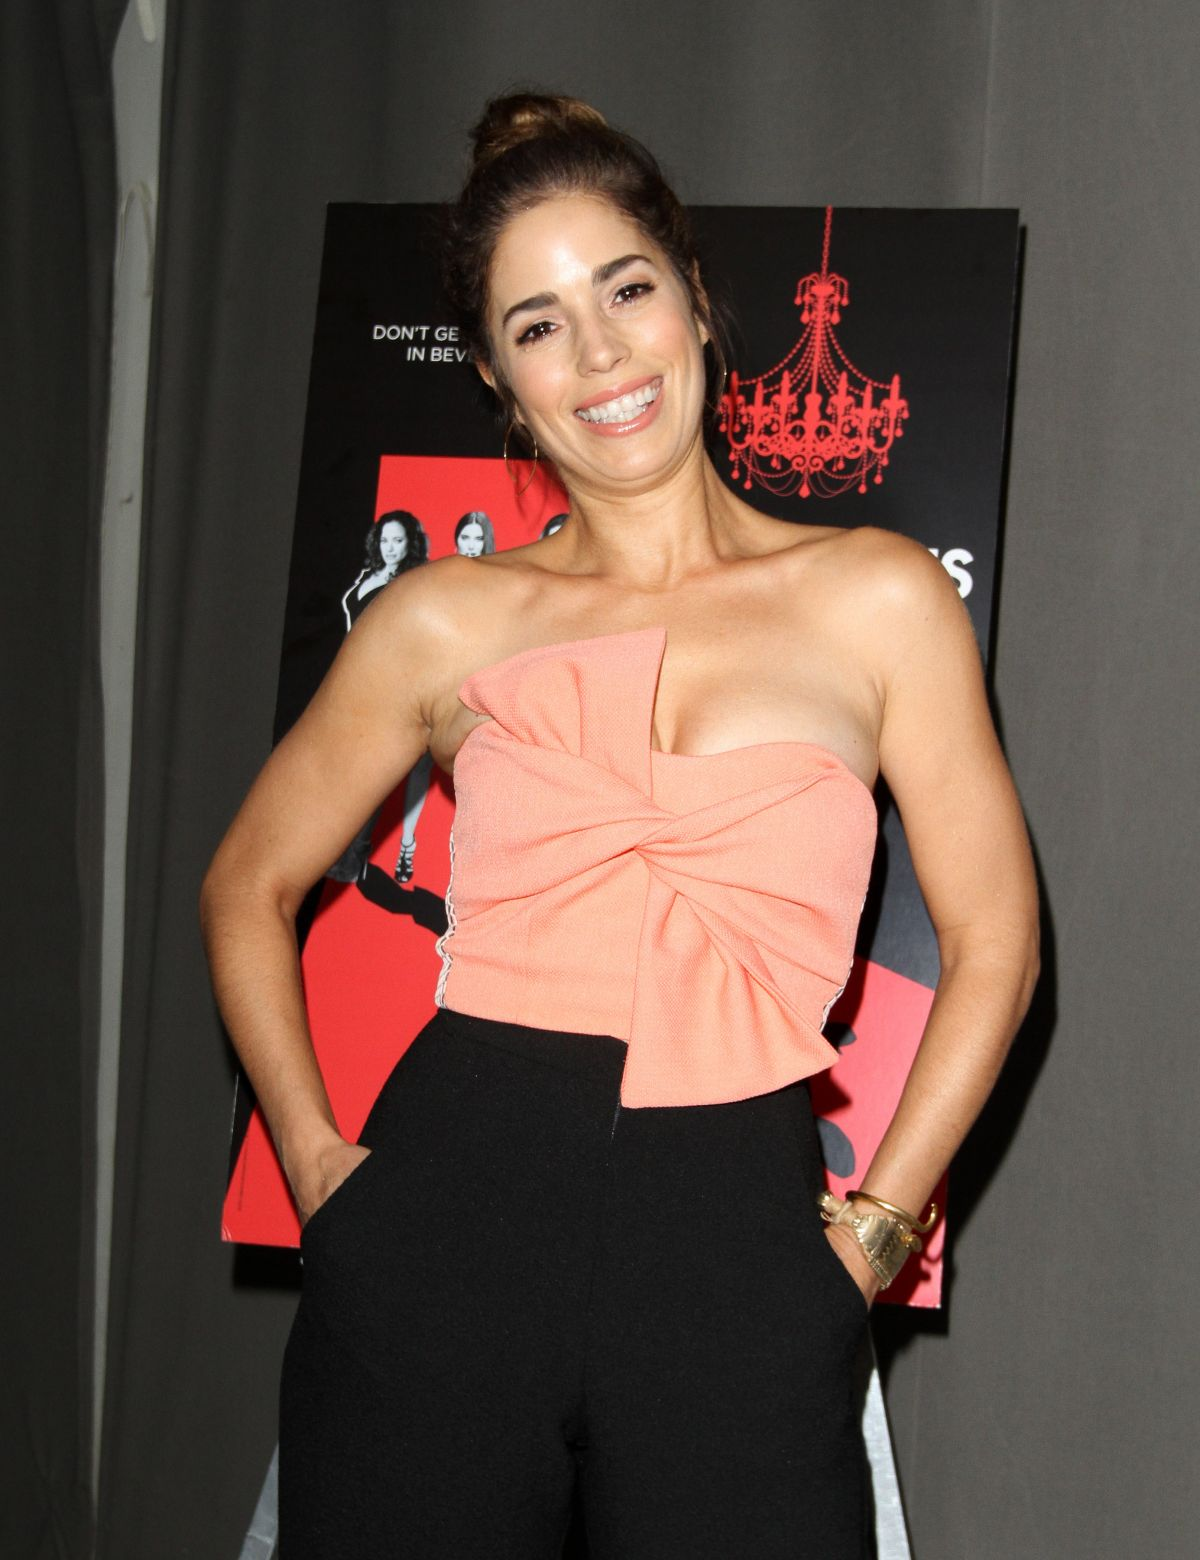 ANA ORTIZ at Devious Maids Season 4 Premiere in Los Angeles 06/02/2016